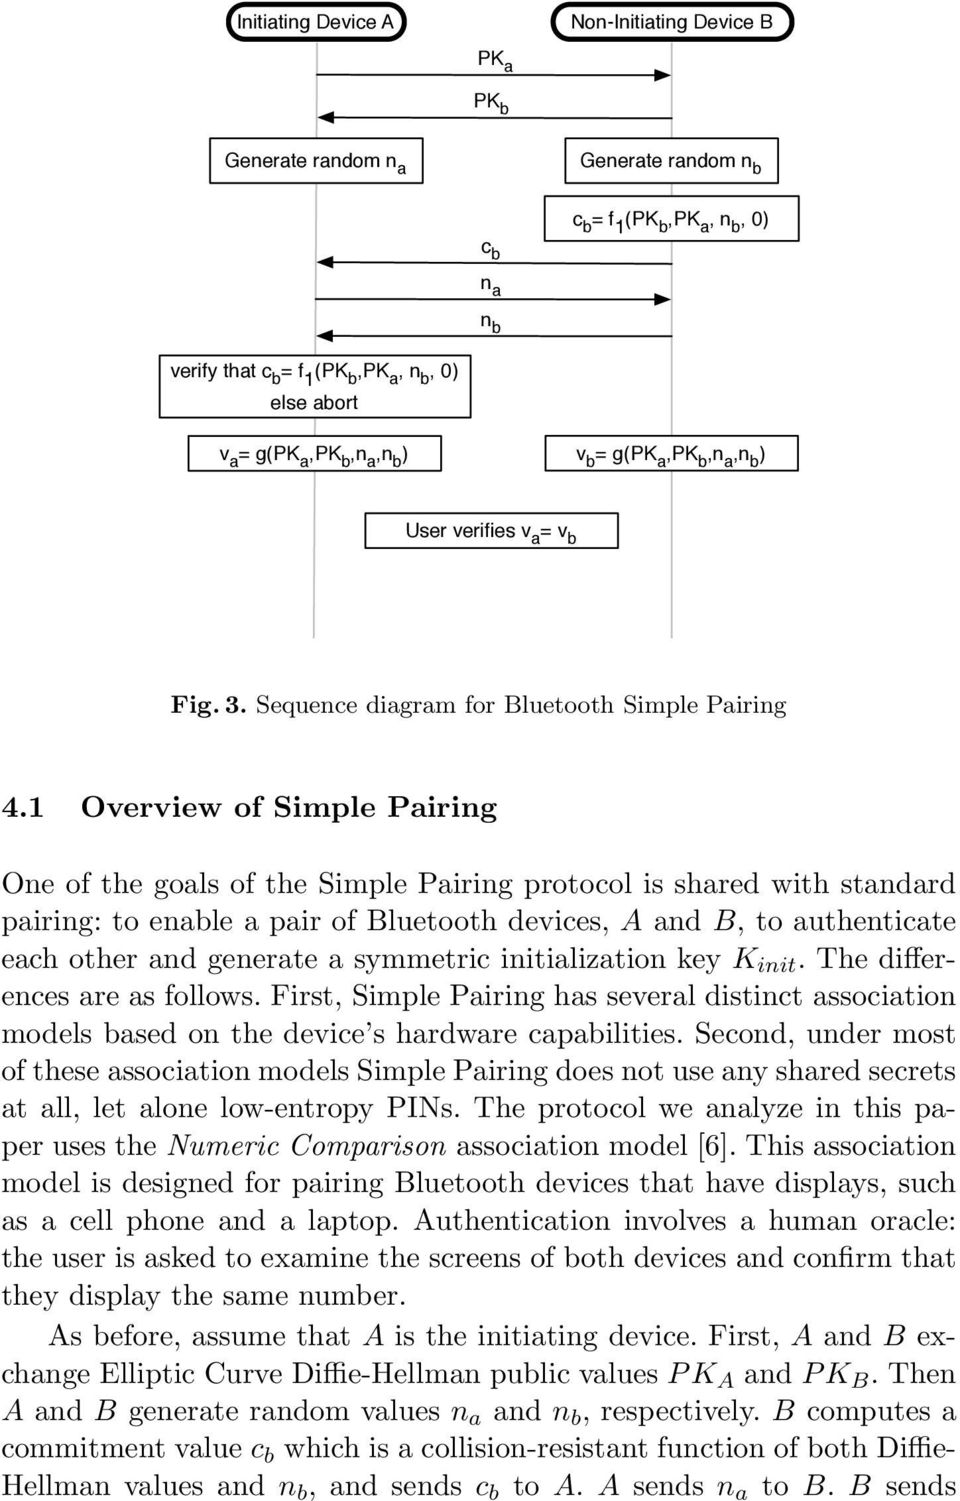 1 Overview of Simple Pairing One of the goals of the Simple Pairing protocol is shared with standard pairing: to enable a pair of Bluetooth devices, A and B, to authenticate each other and generate a